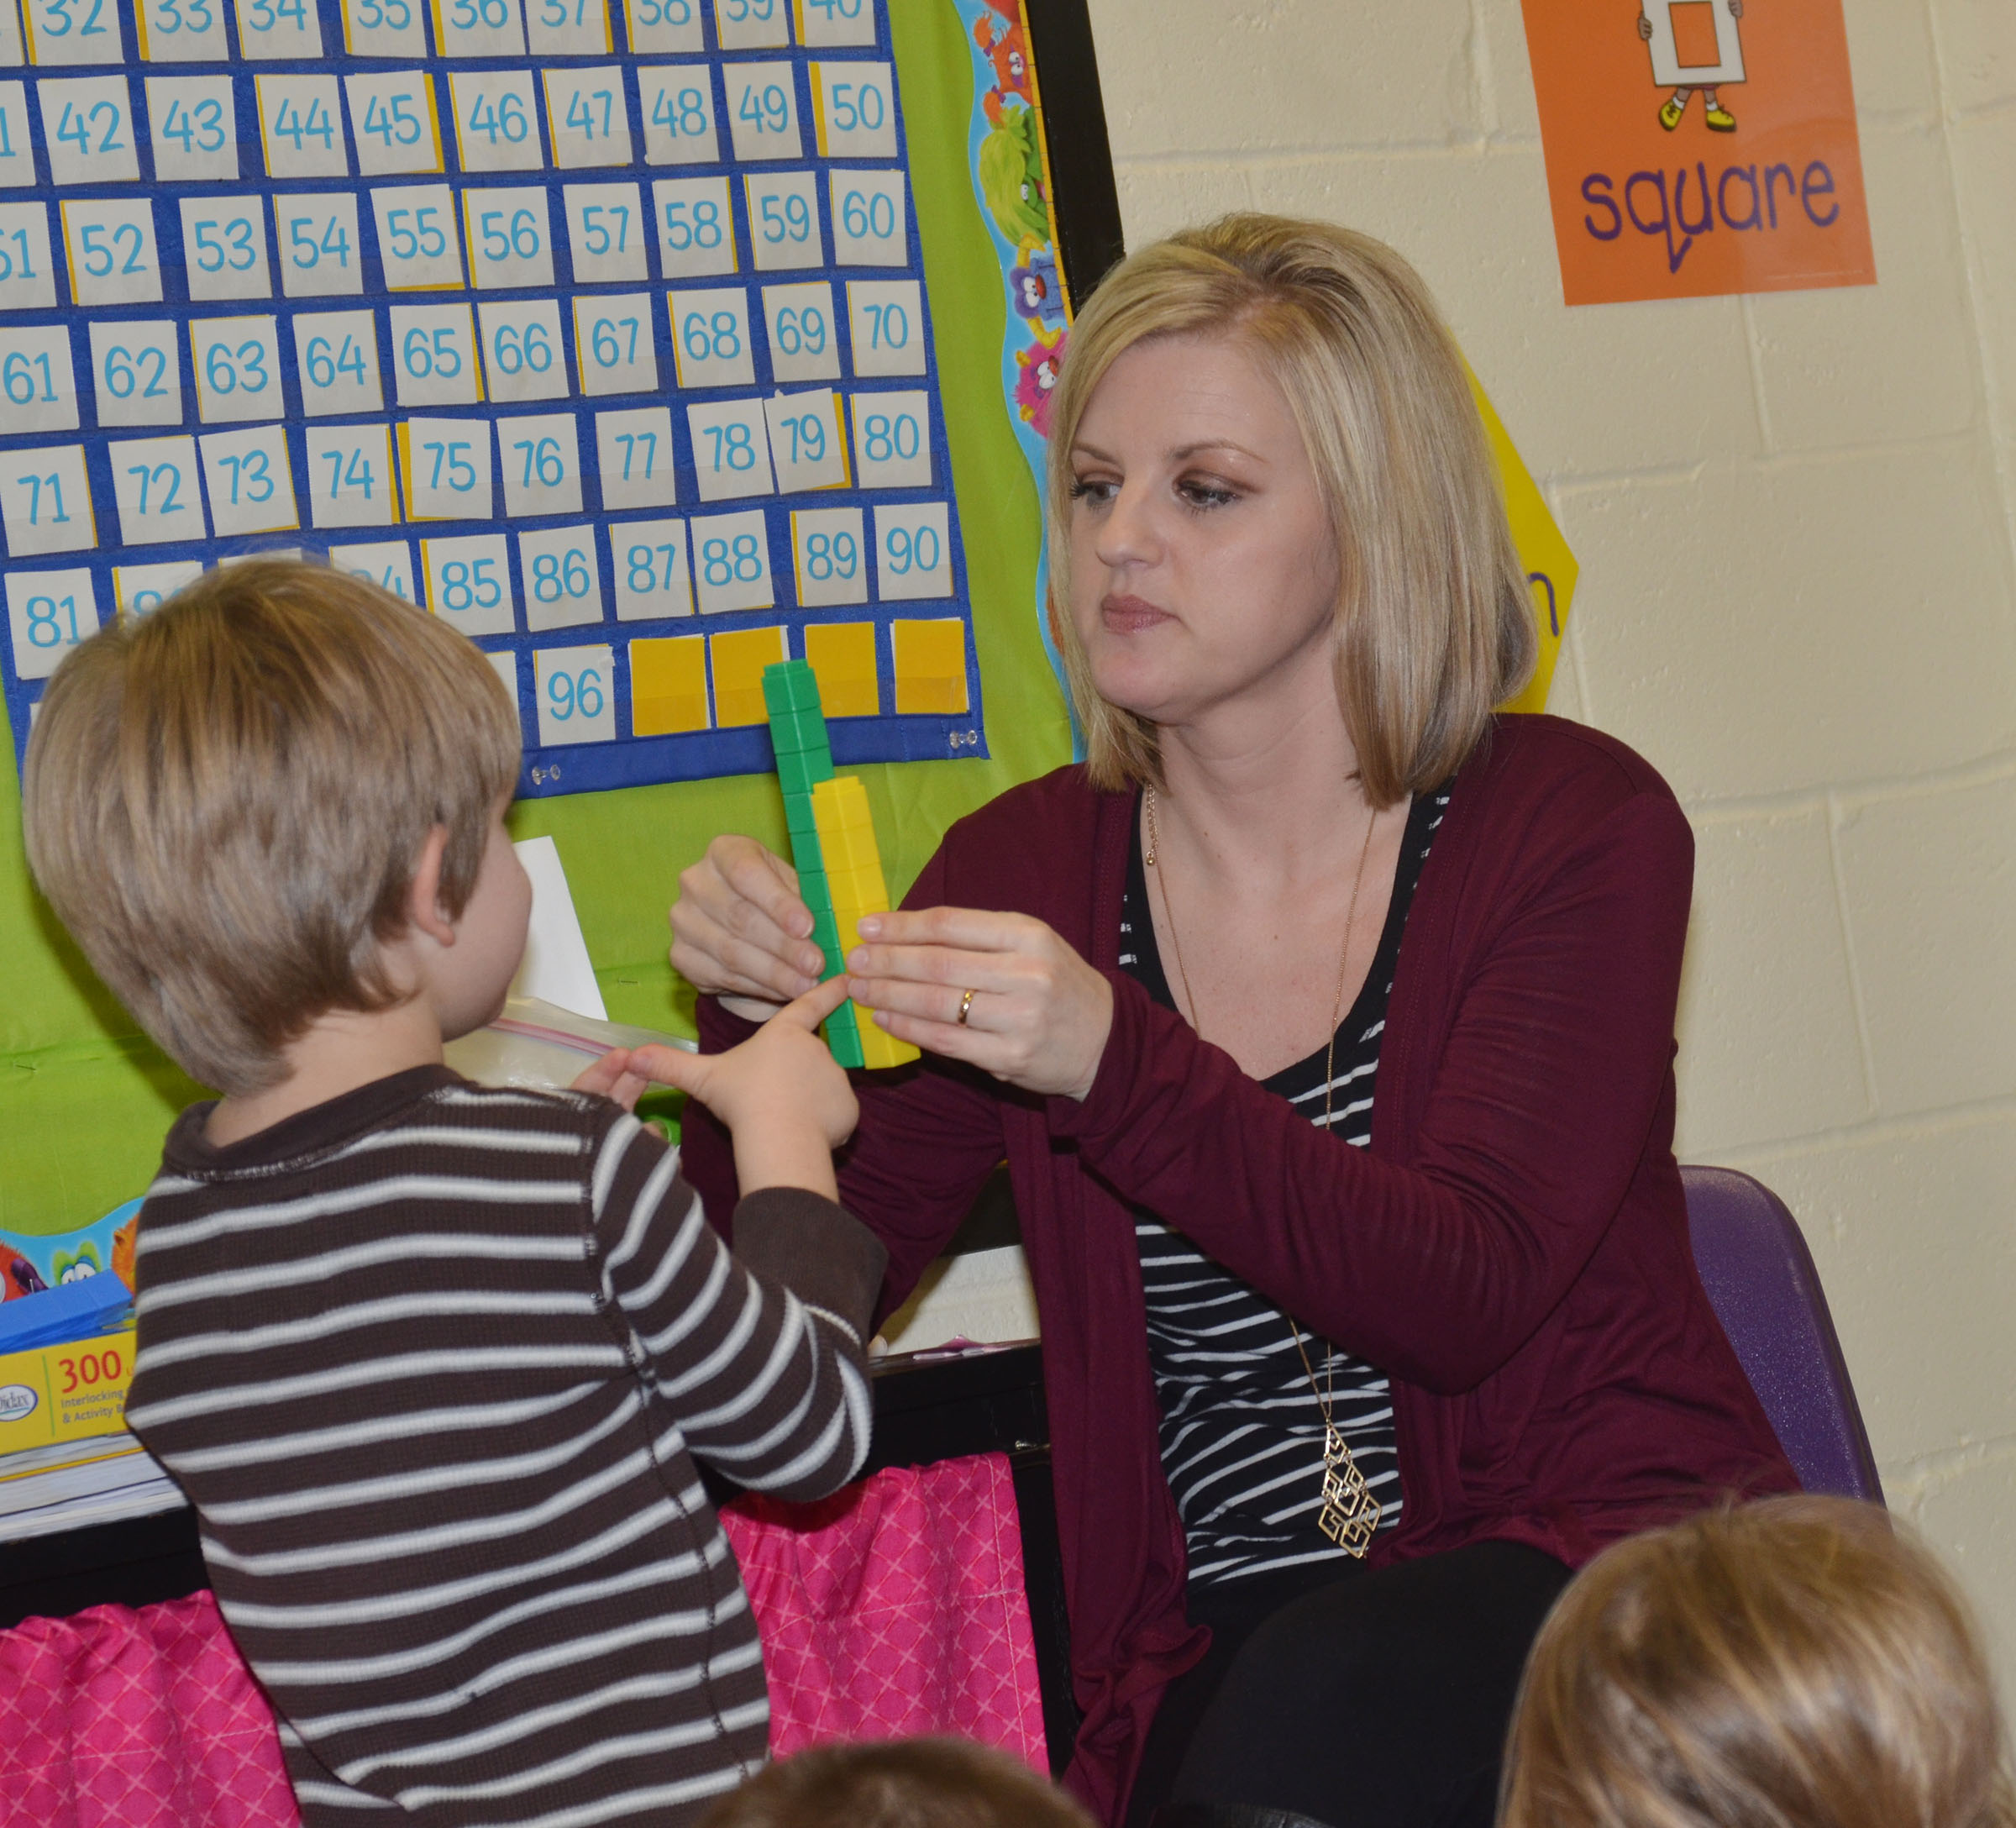 CES kindergarten teacher Leanna Cundiff asks student Luke Banta which tower is smaller, and by how many blocks.